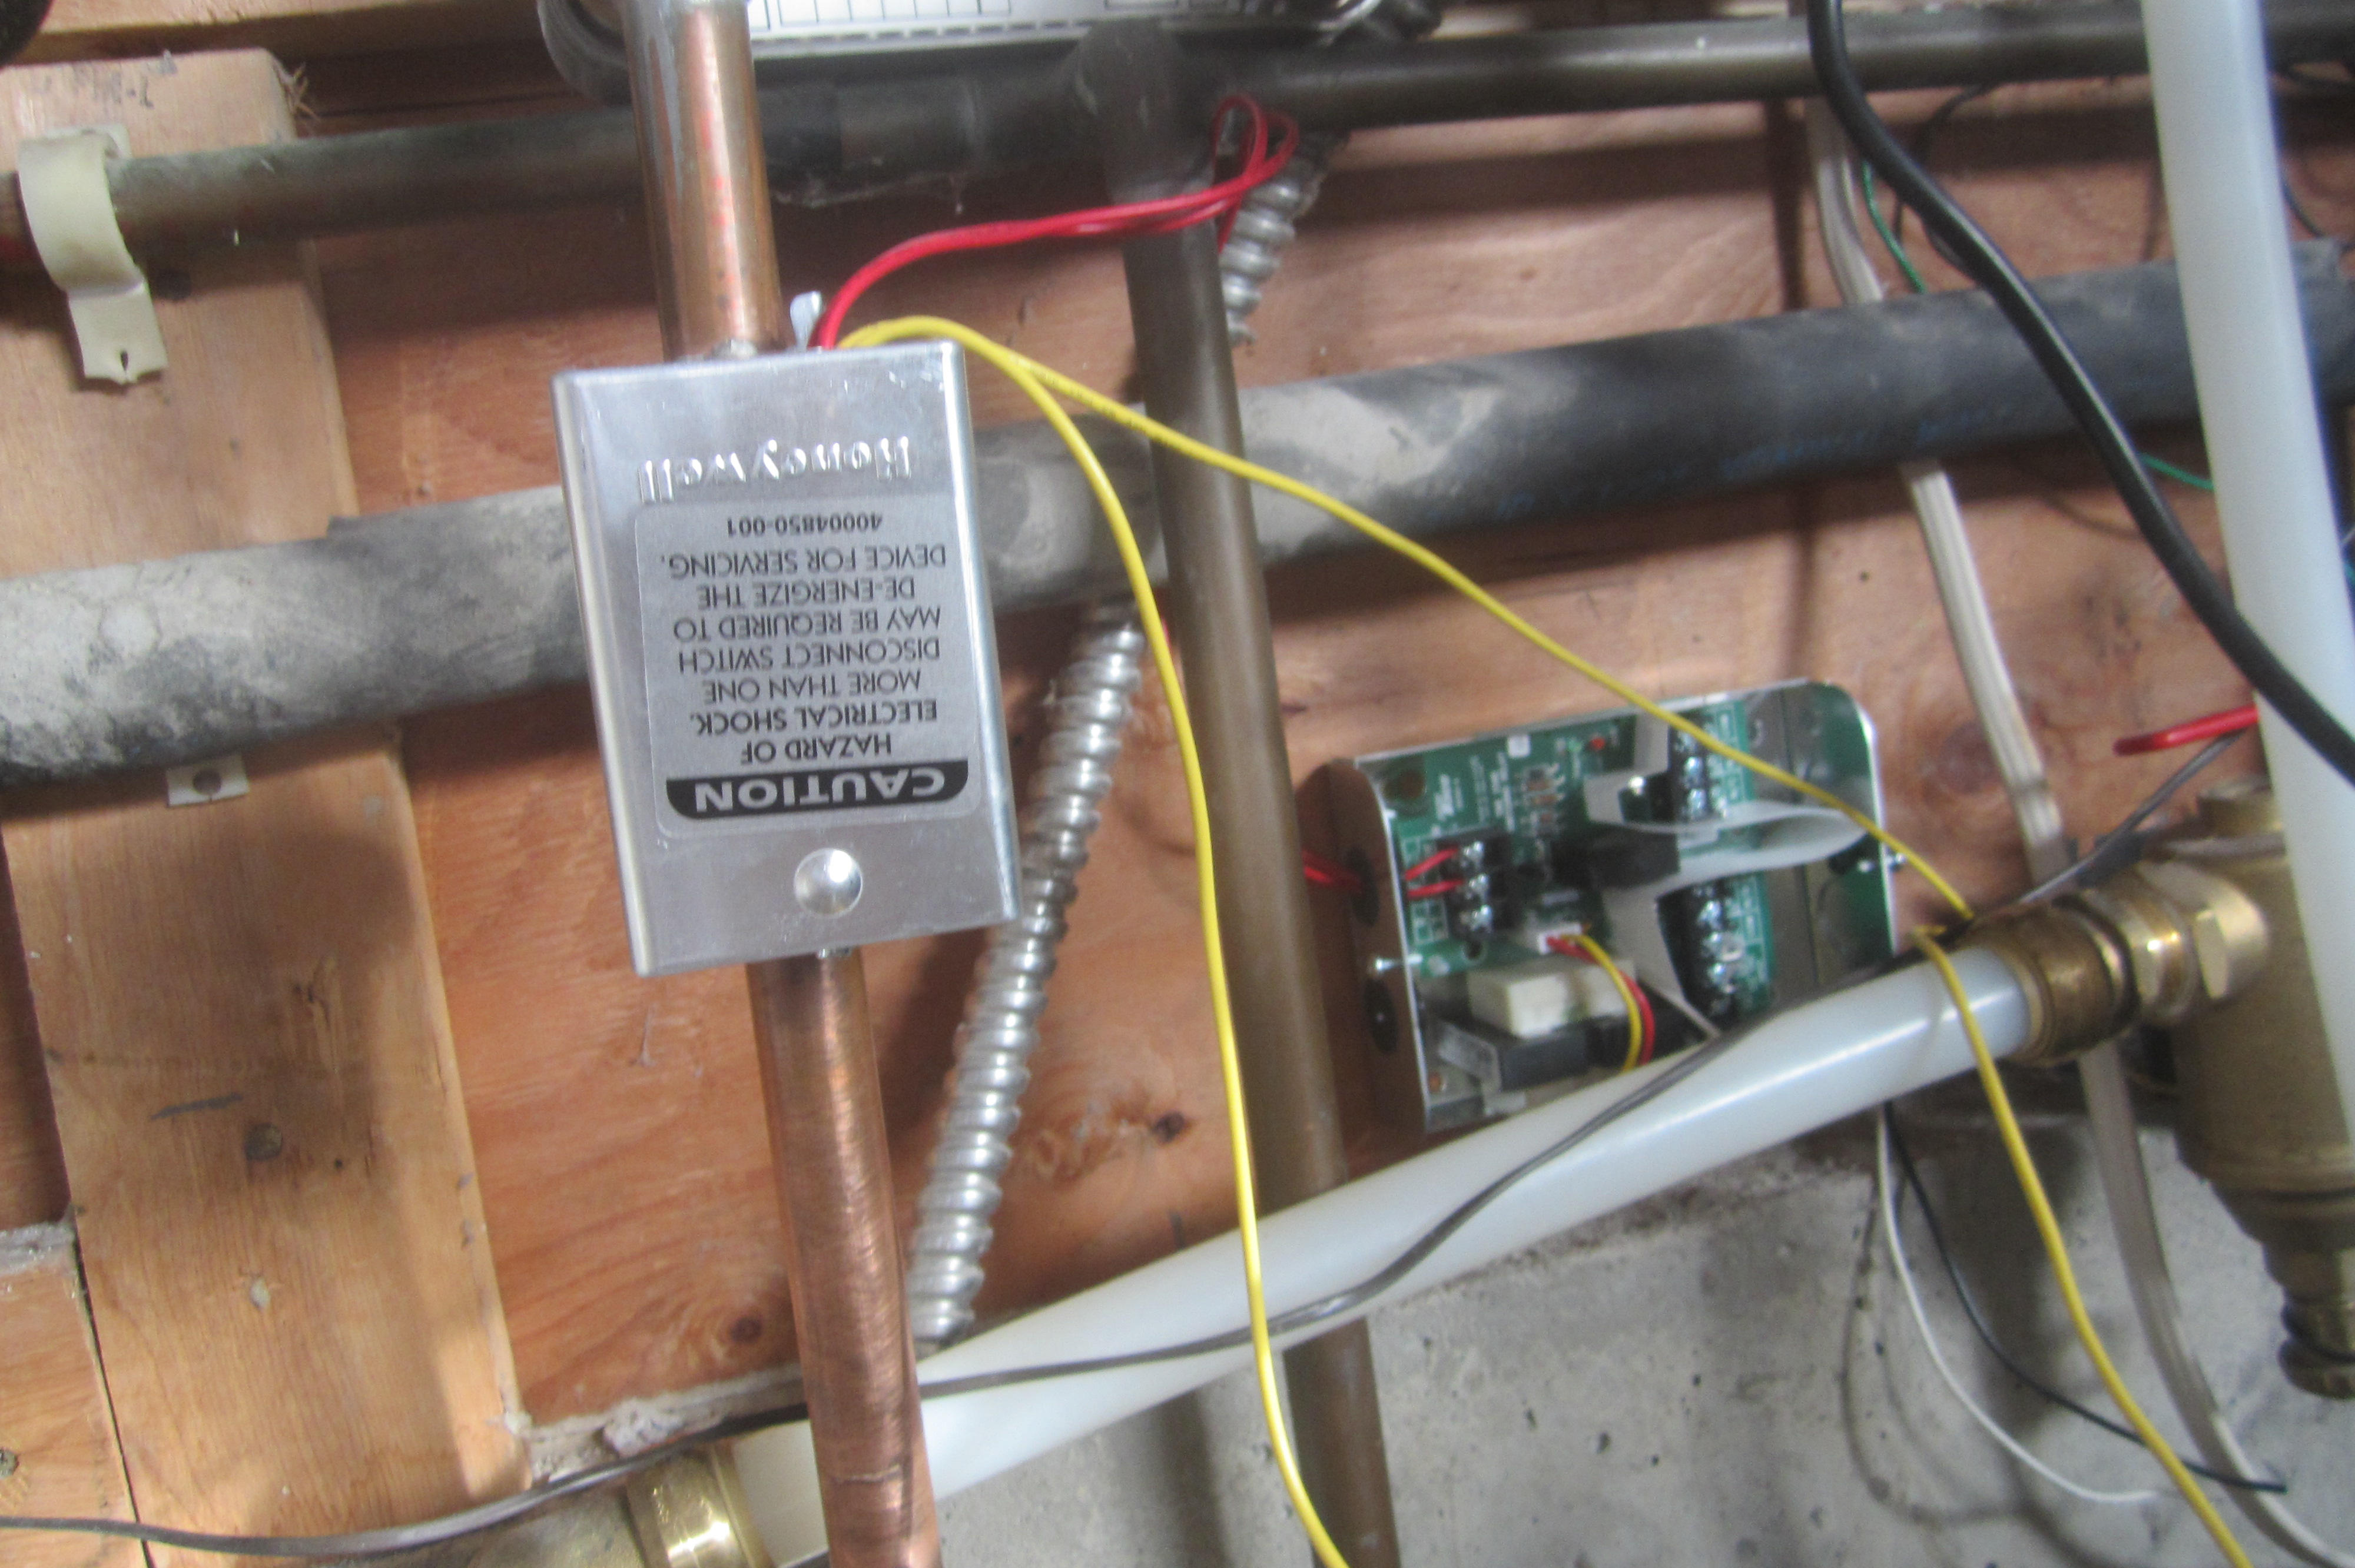 Wiring 8043 Honeywell Zone Valve Car Diagrams Explained White Rodgers 3 Wire Diagram Diy Enthusiasts Twinsprings Research Institute Rh Blog Com Heat Valves Control